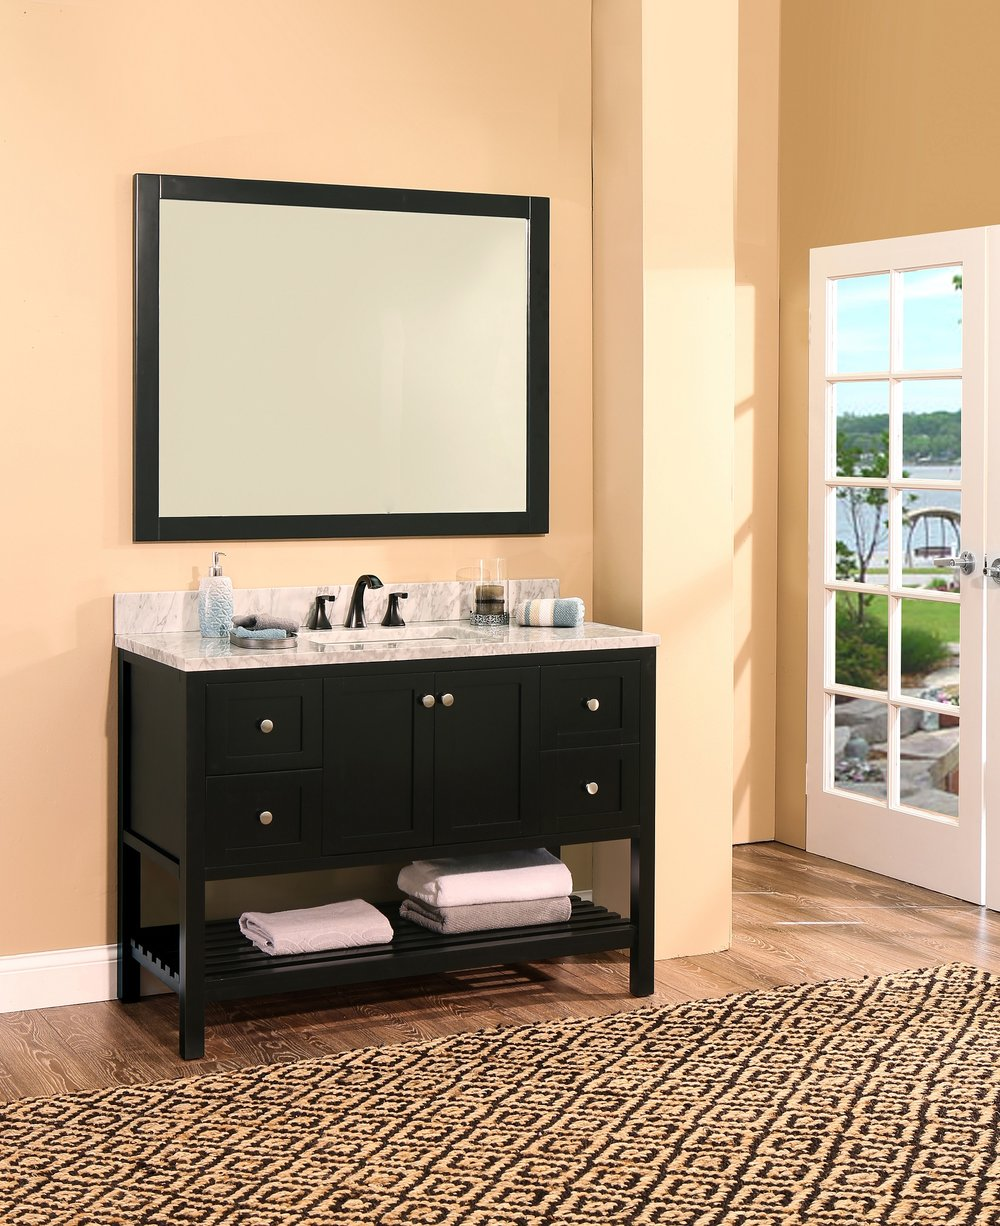 "hampton bay bathroom vanity set absolute black, 48""     $1250.00"